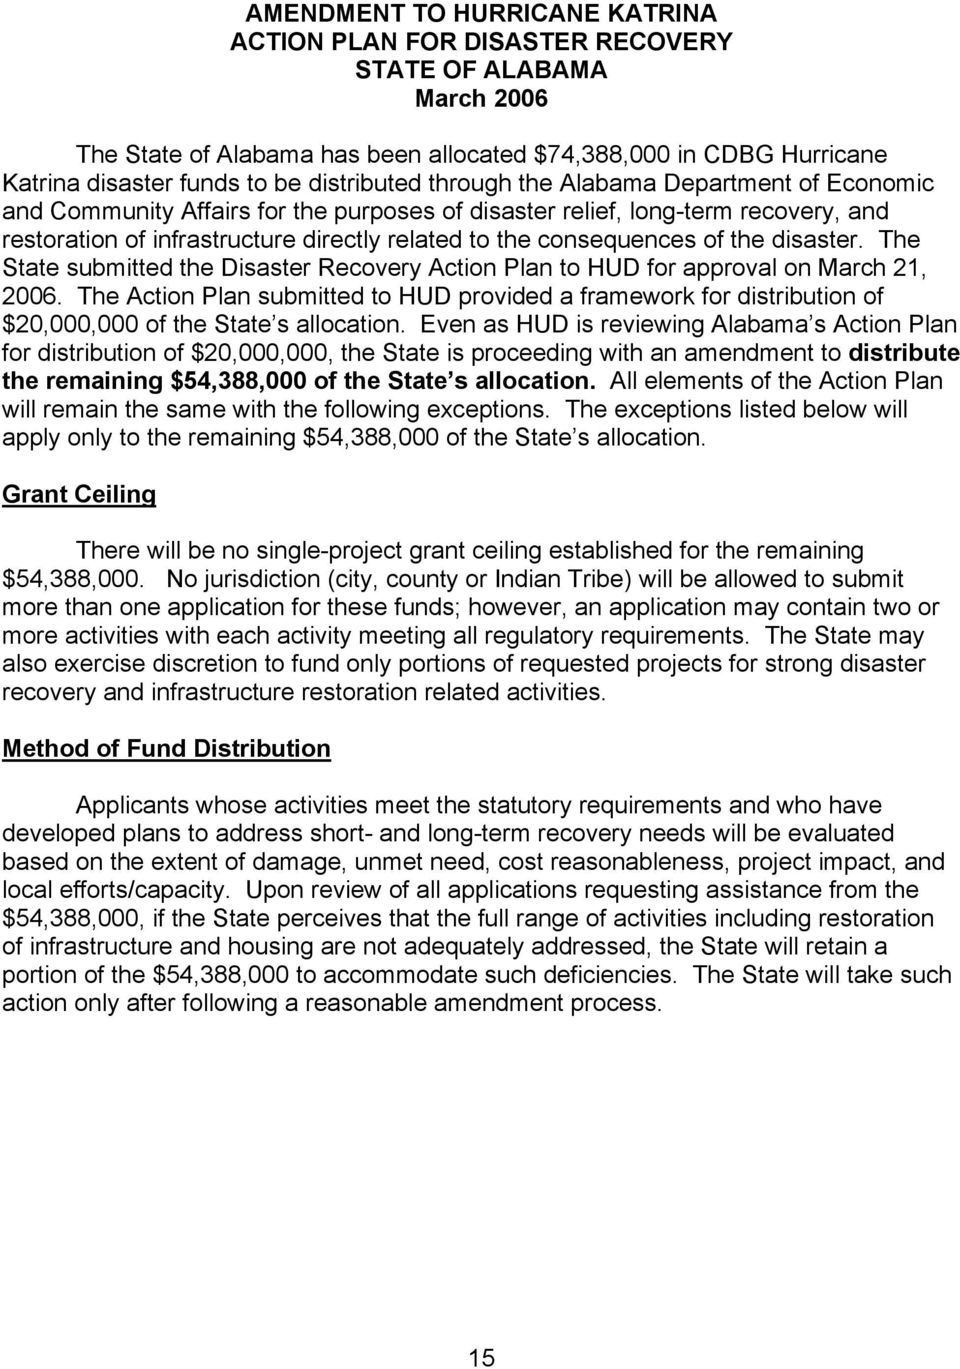 consequences of the disaster. The State submitted the Disaster Recovery Action Plan to HUD for approval on March 21, 2006.